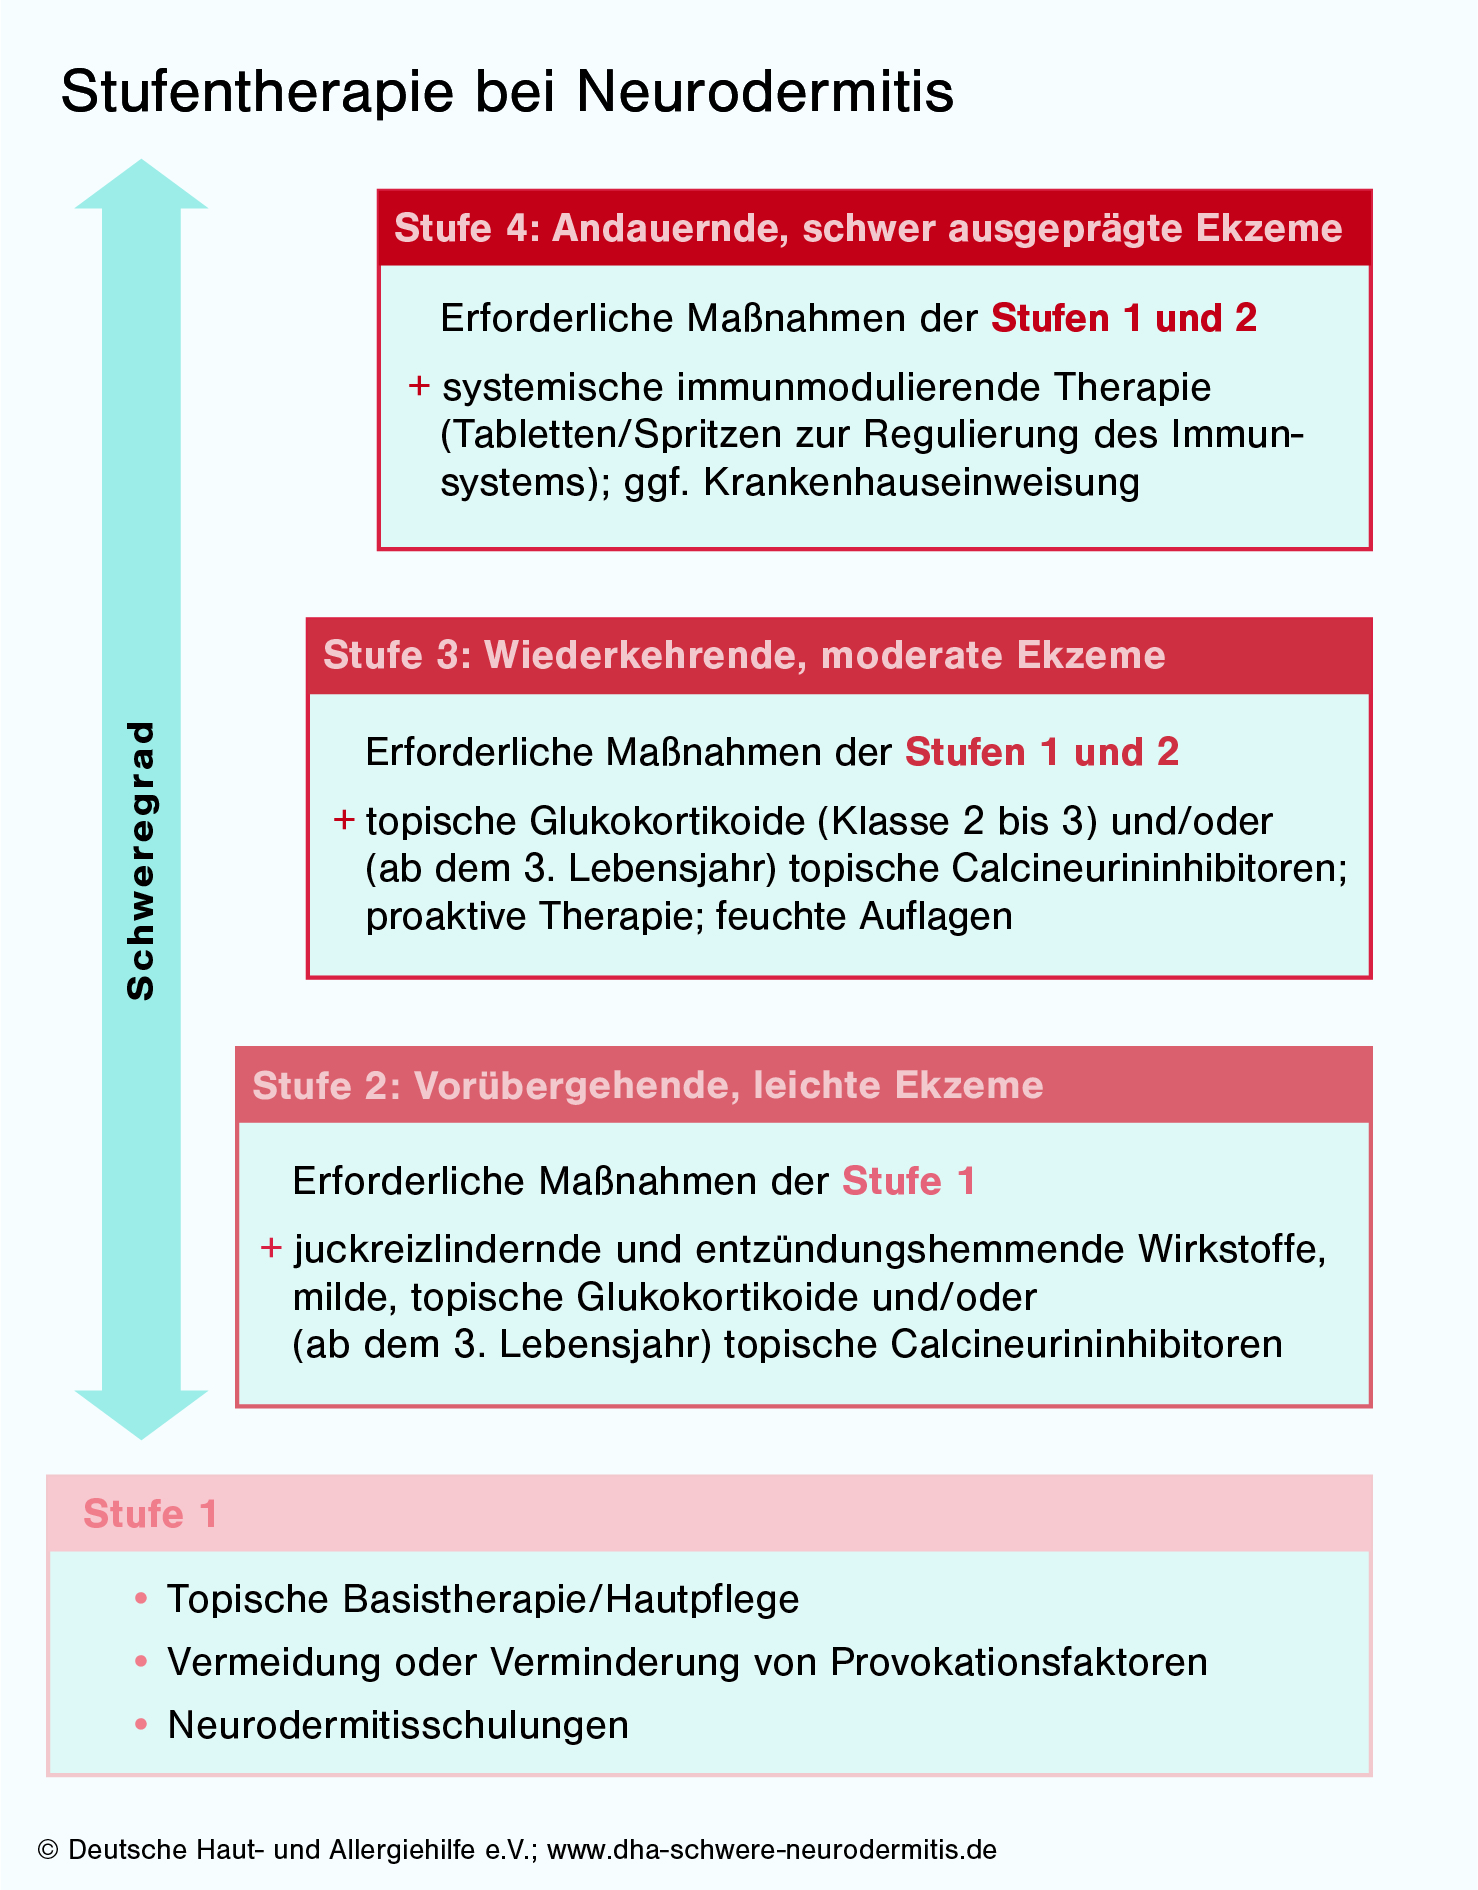 DHA Schwere Neurodermitis Stufentherapie